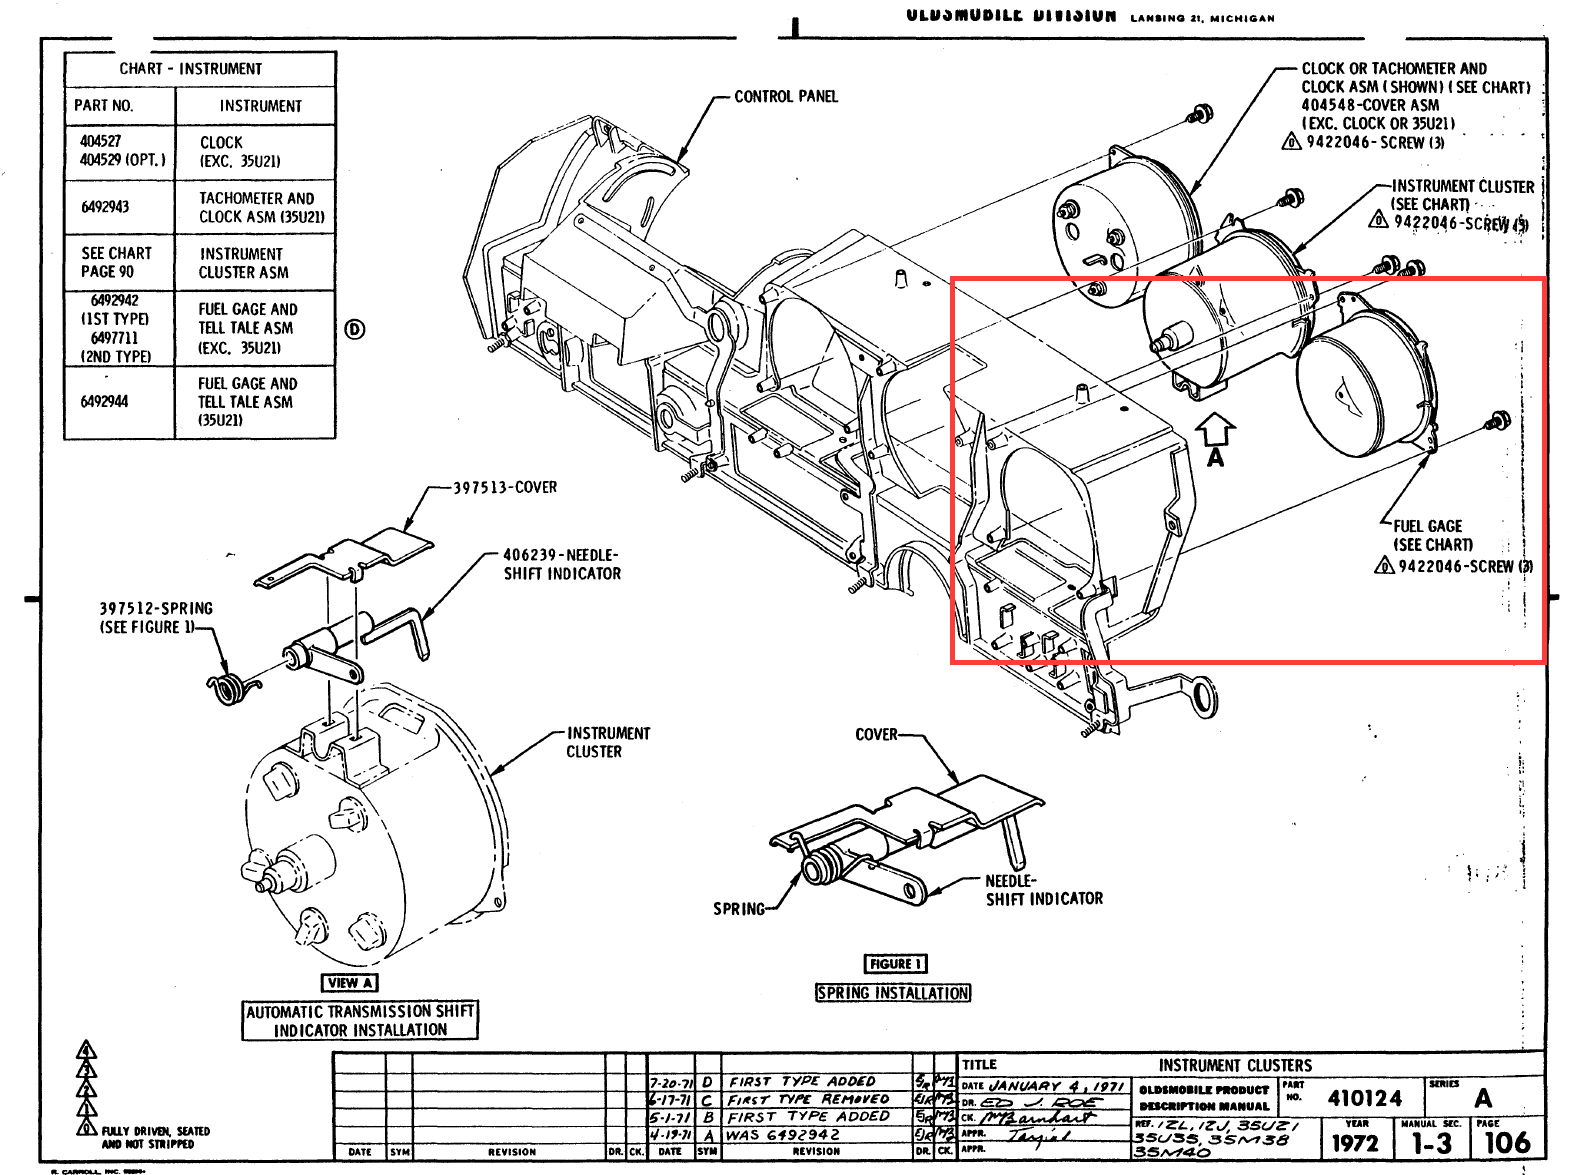 1972 oldsmobile cutlass supreme wiring diagrams [wrg-9867] 1970 oldsmobile 442 wiring diagram